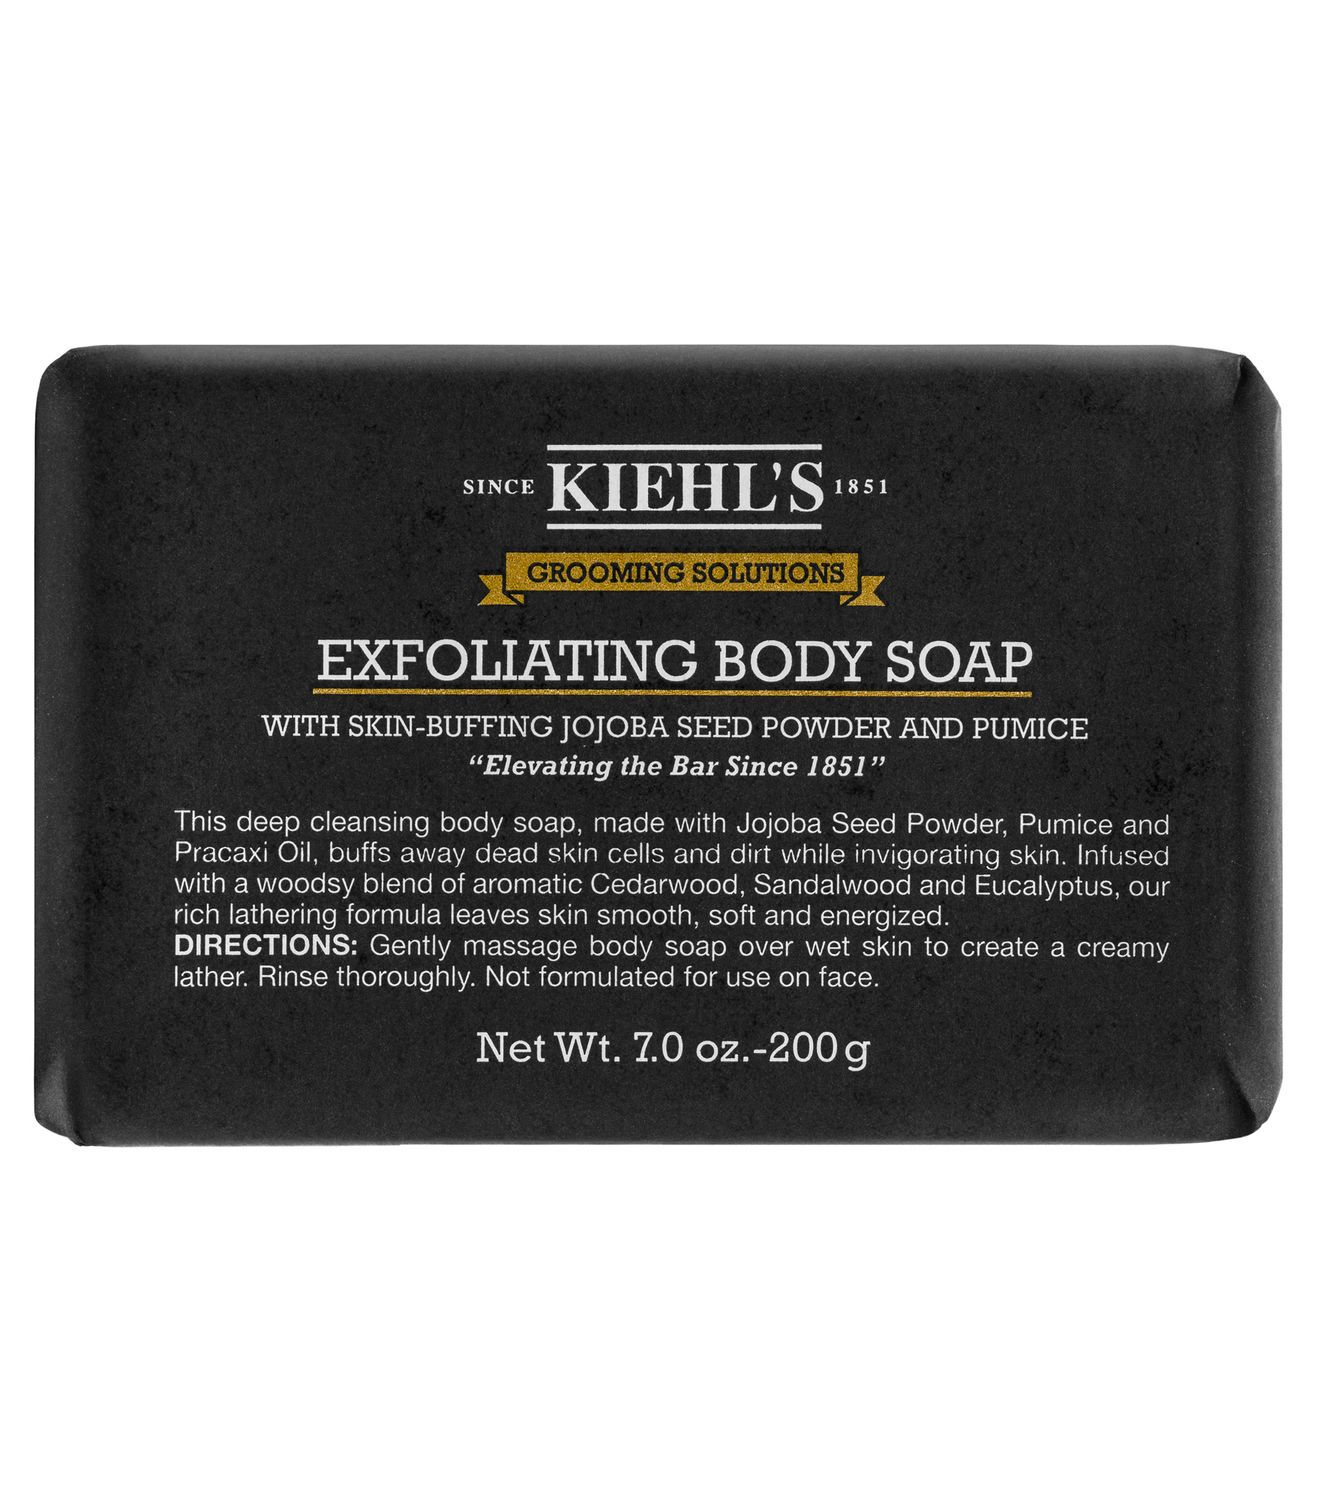 Kiehls Grooming Solutions Bar Soap 200g